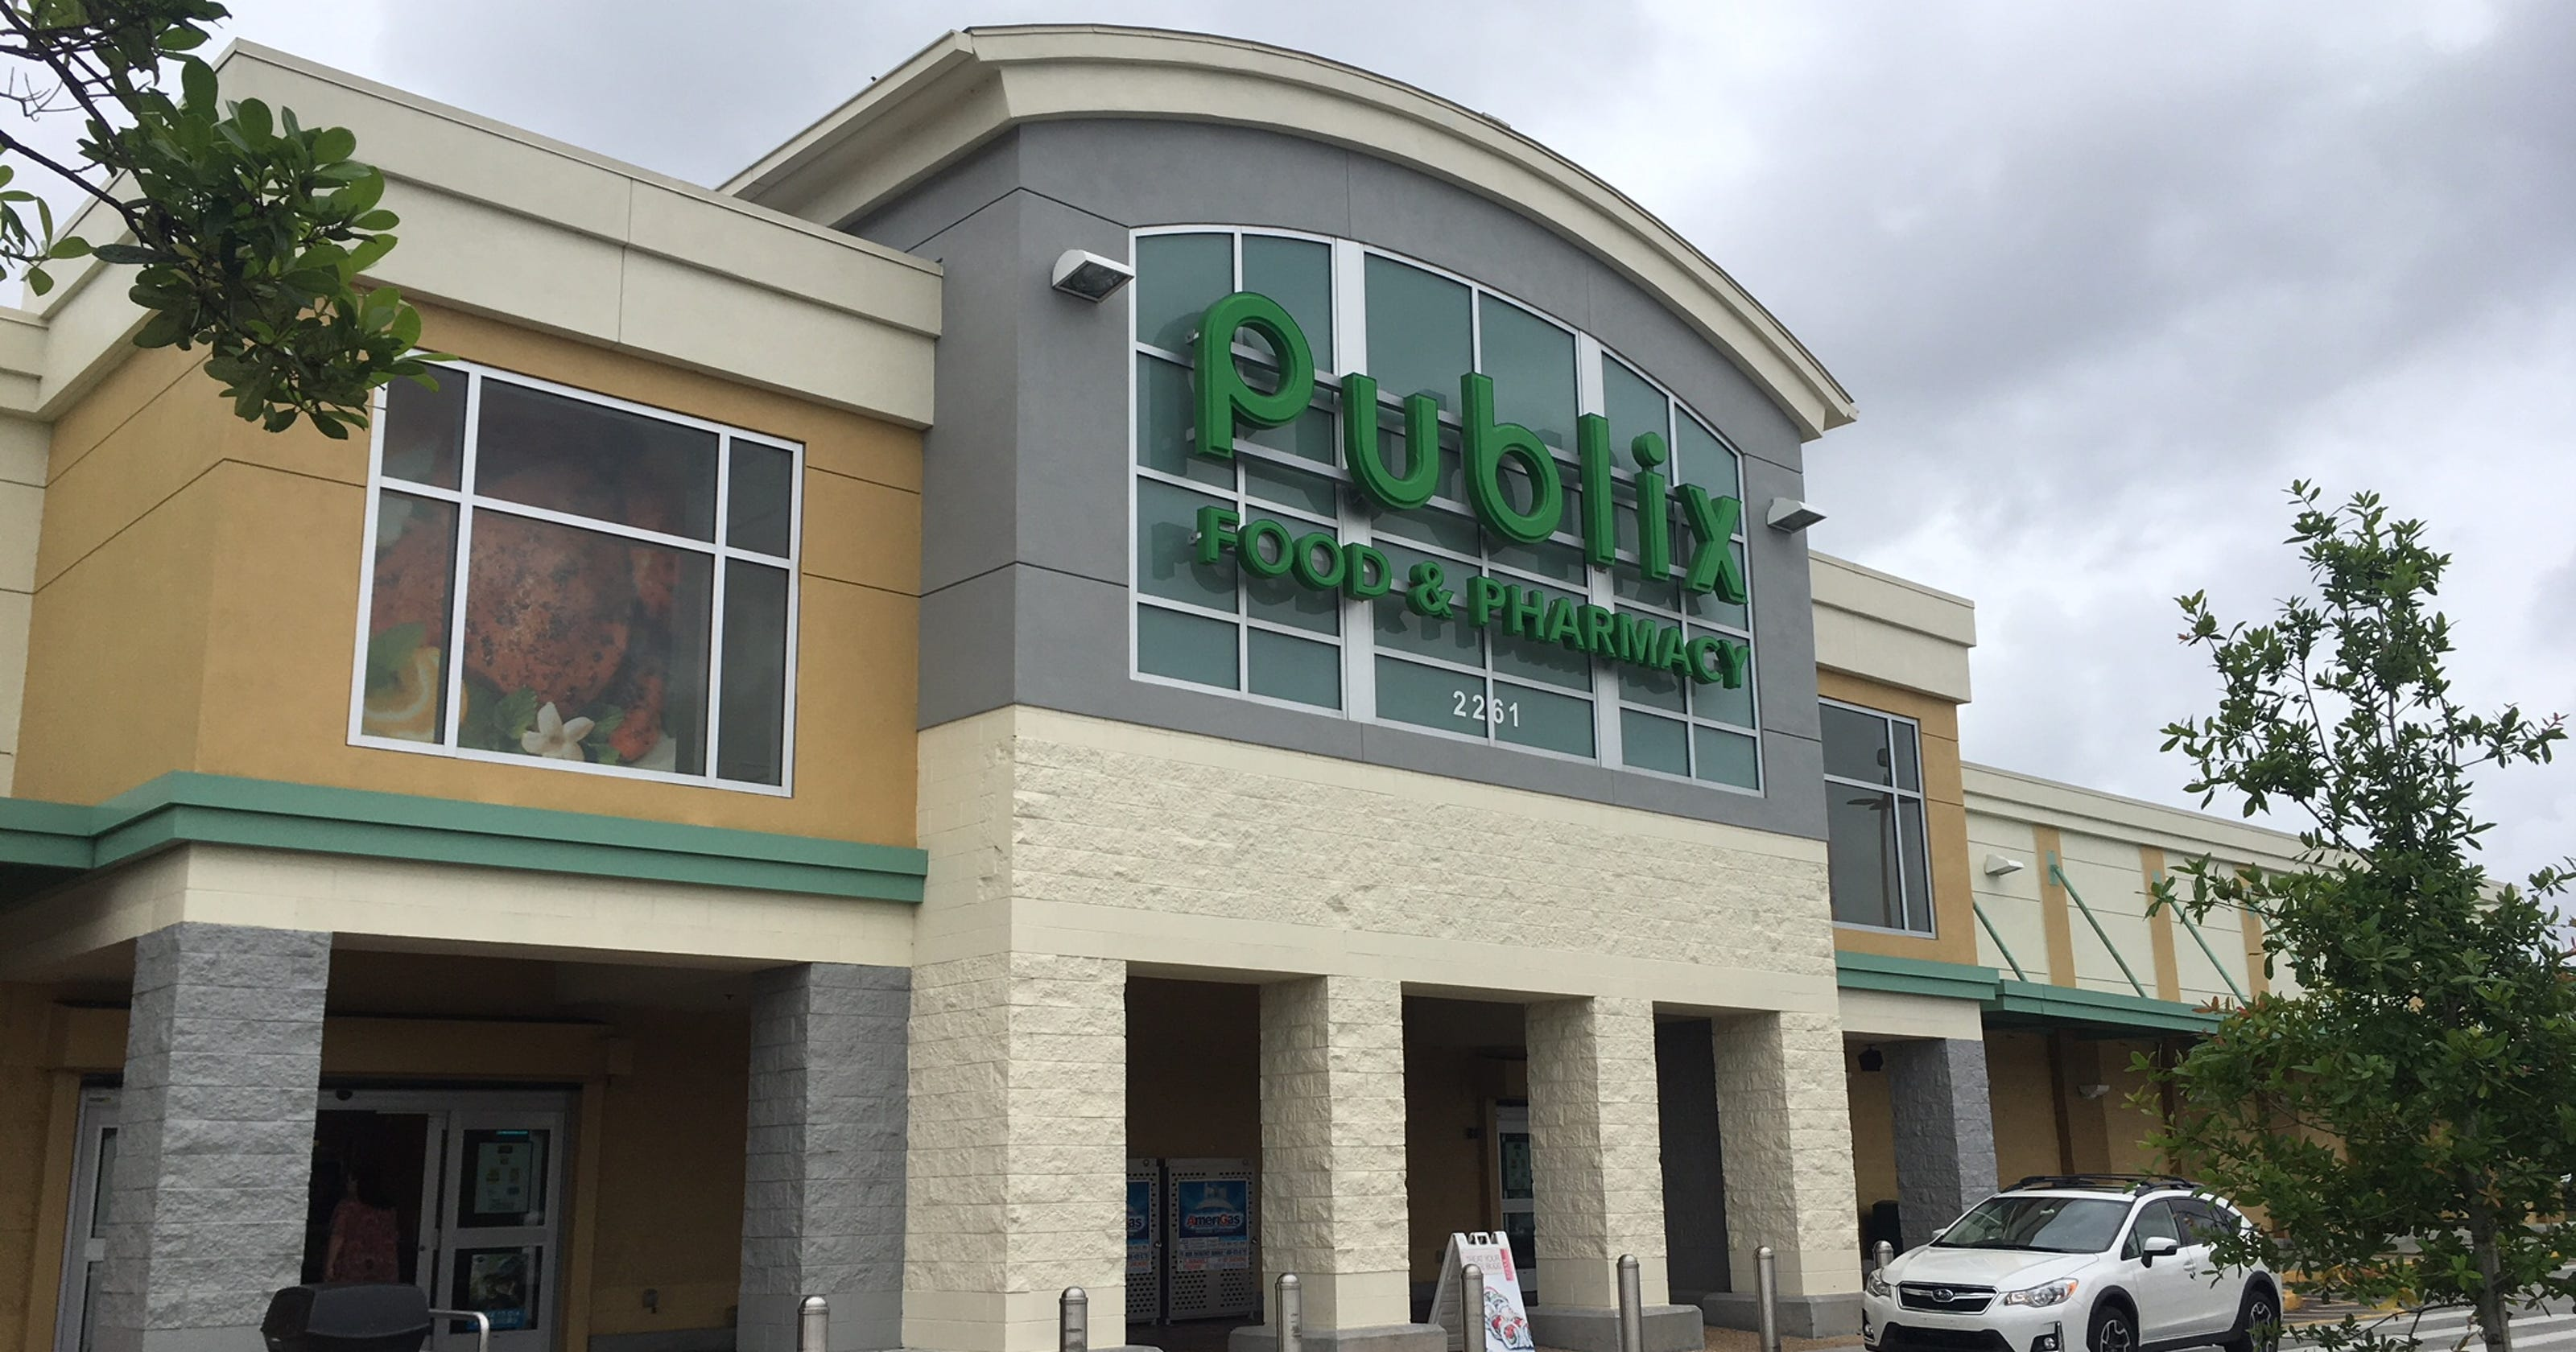 Man Dies After Altercation At Publix With 2 Police Officers